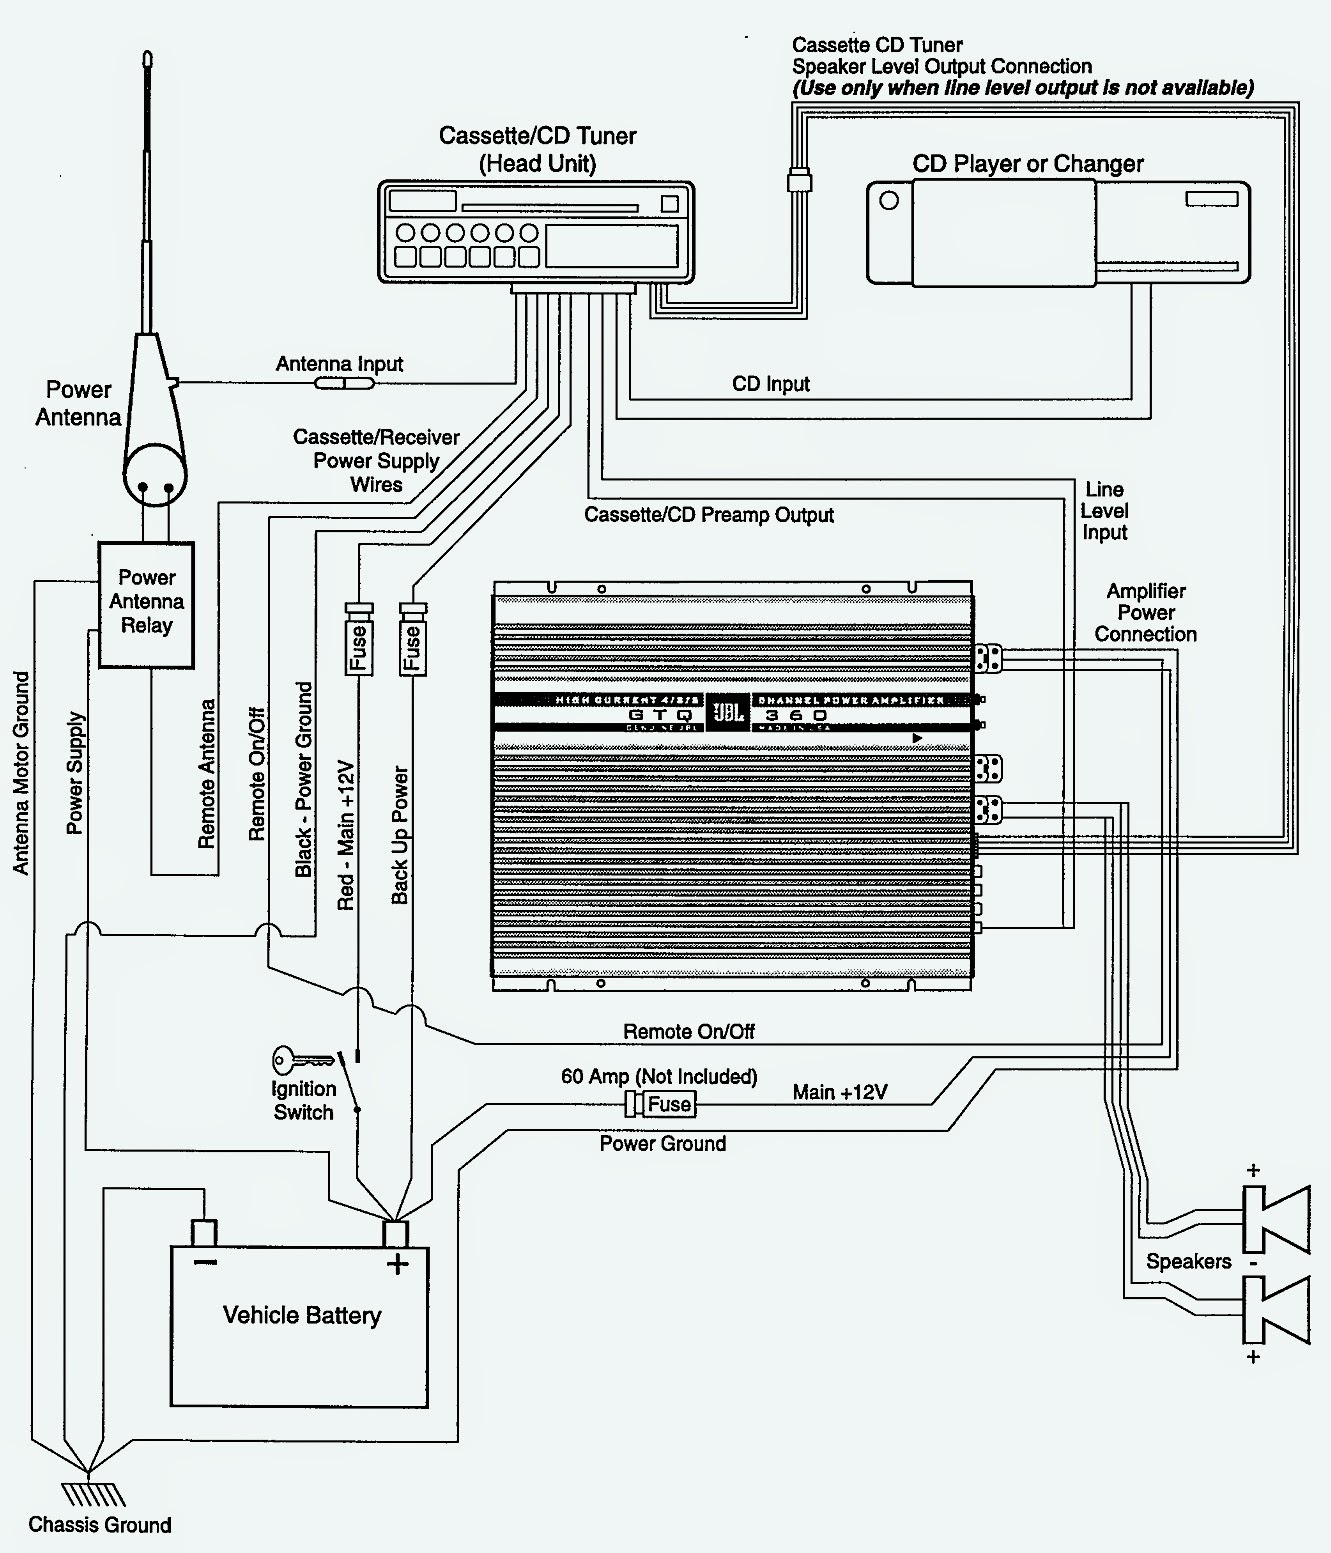 WIRING DIAGRAM - JBL JTQ-360 CAR STEREO